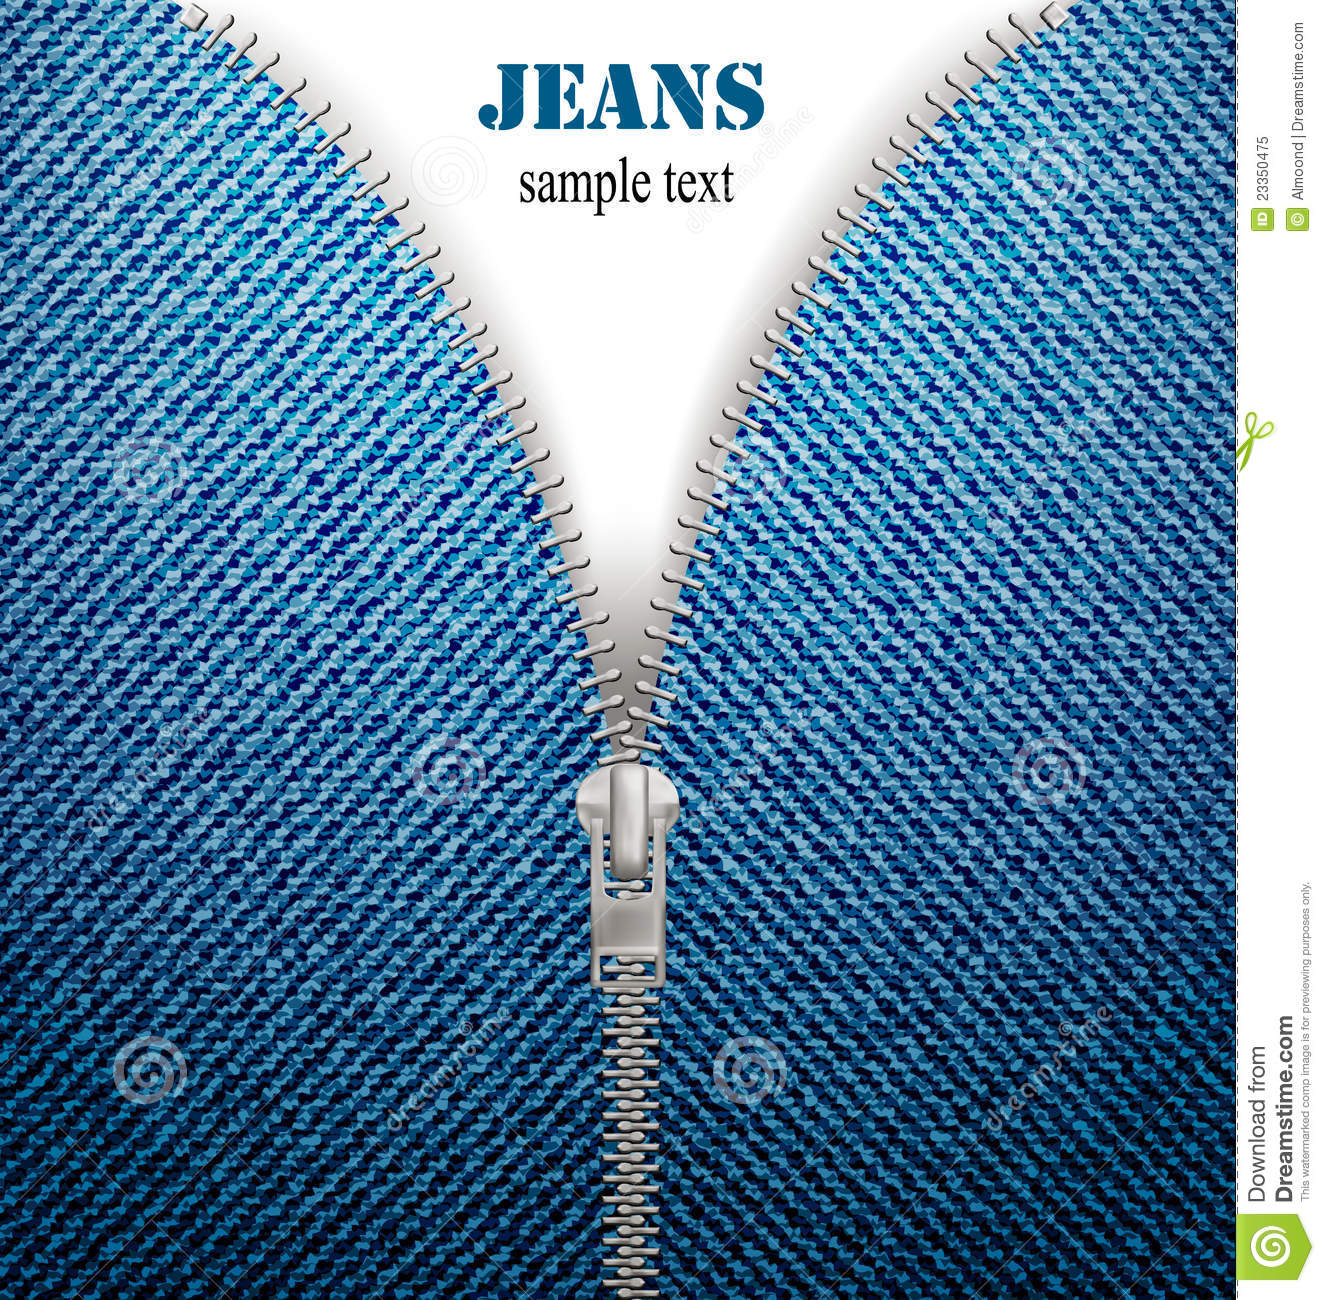 in blue jeans background